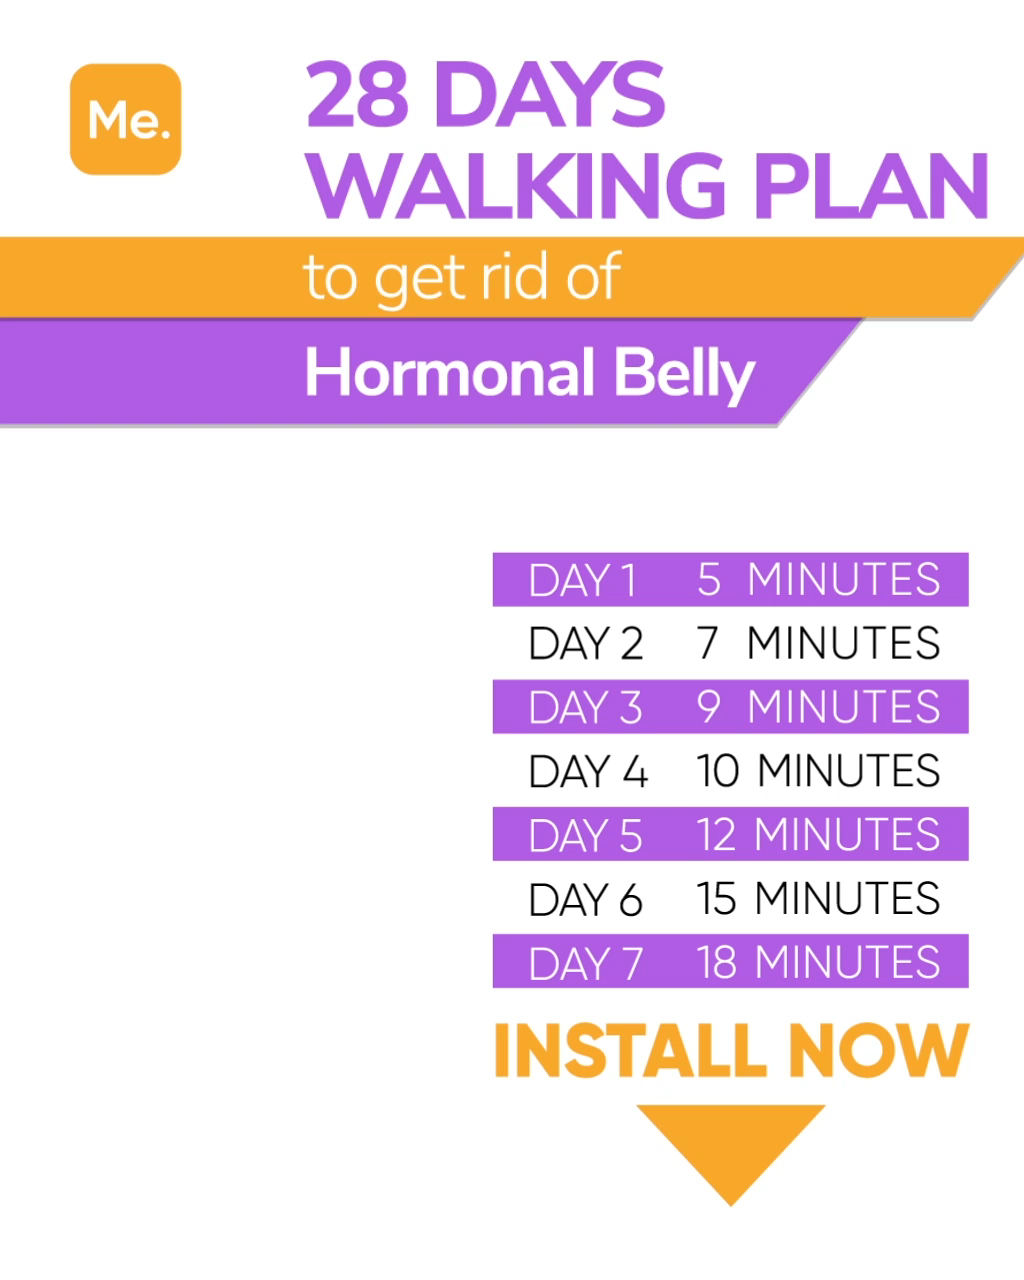 WALKING PLAN FOR WEIGHT LOSS